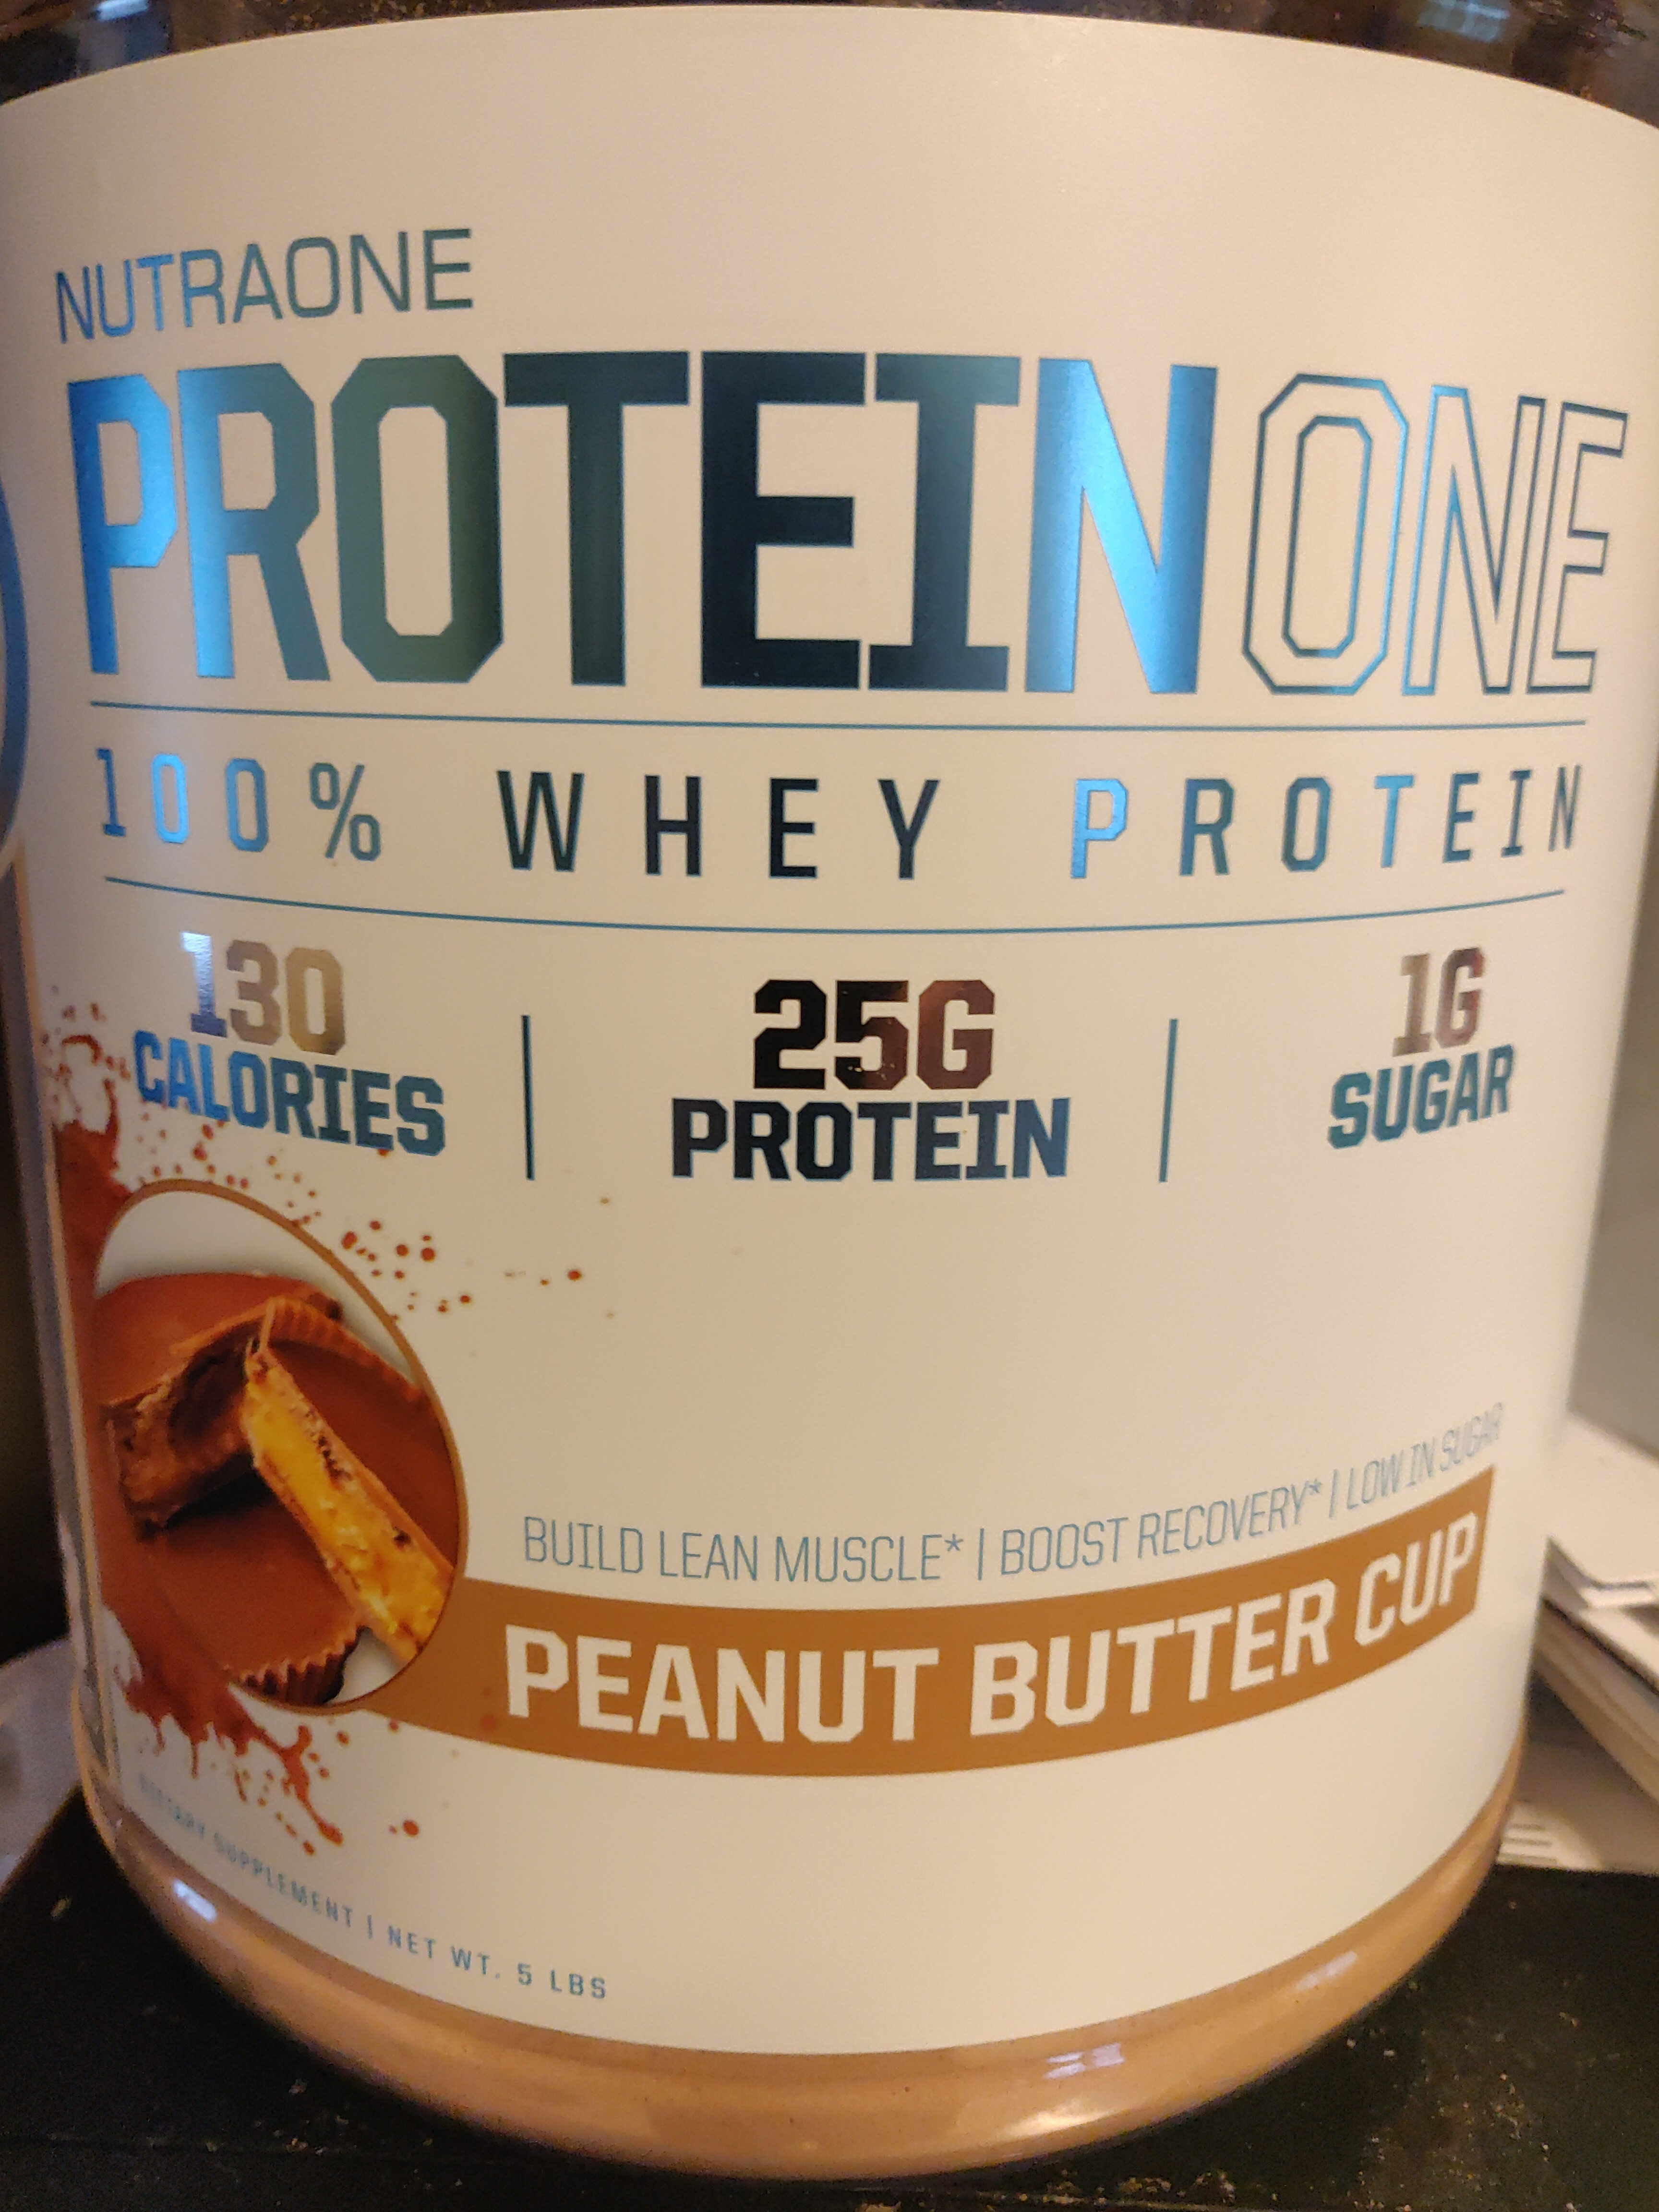 ProteinOne, Peanut Butter Cup - Product - en